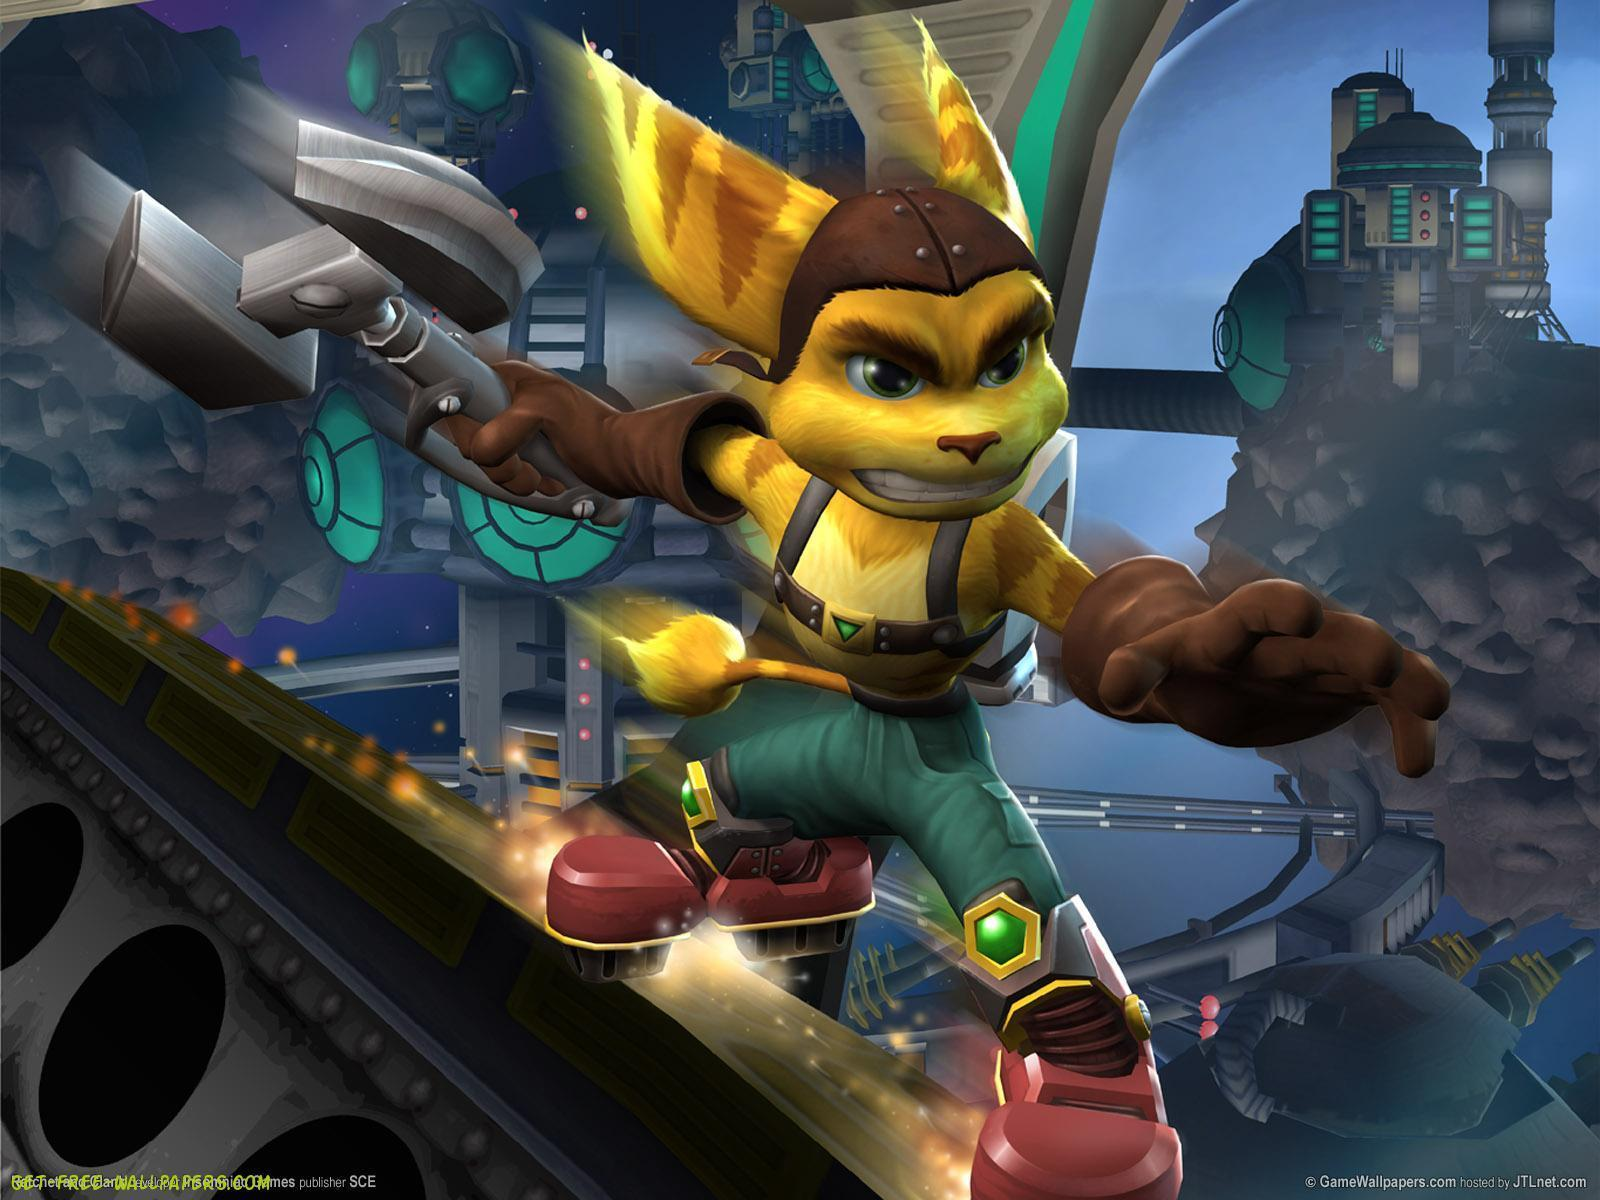 Free Download Ratchet And Clank Wallpaper Ratchet And Clank